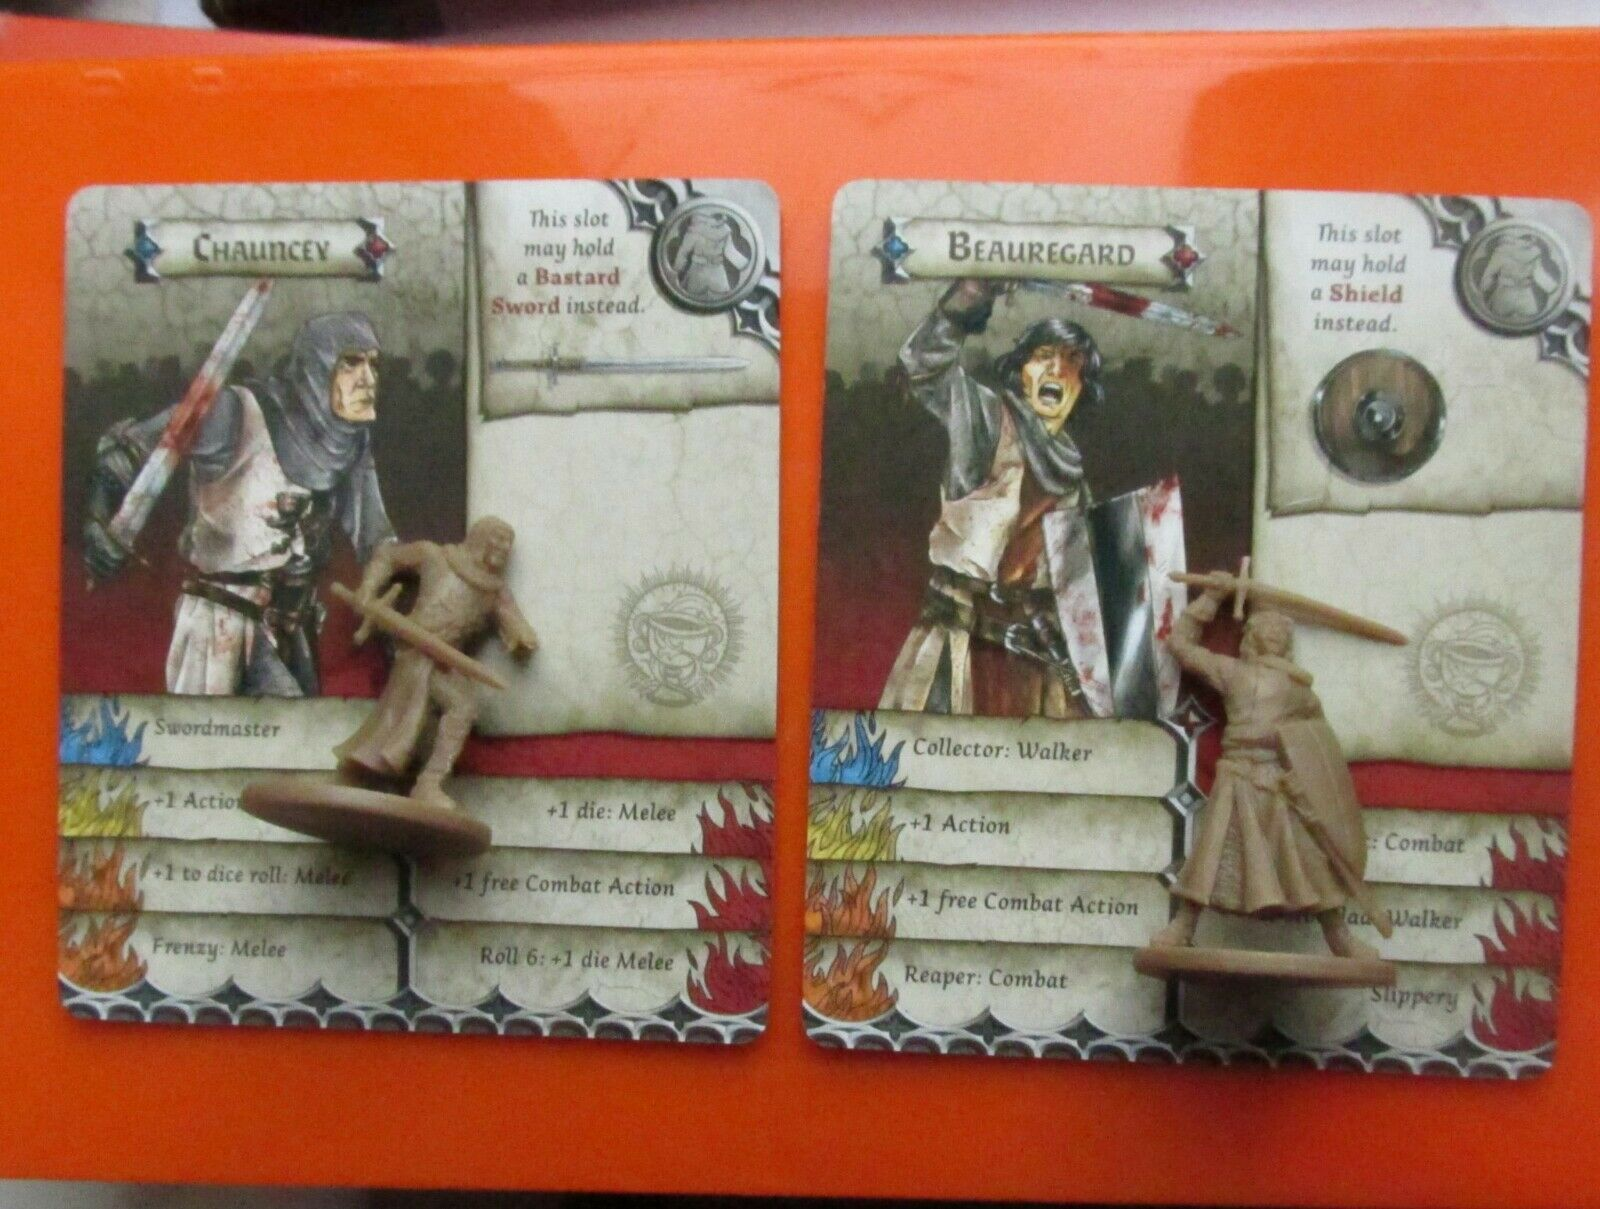 Chauncey & beaurgard Zombicide Zombicide Zombicide games boardgame knights schwarz plague monty python 588e8f